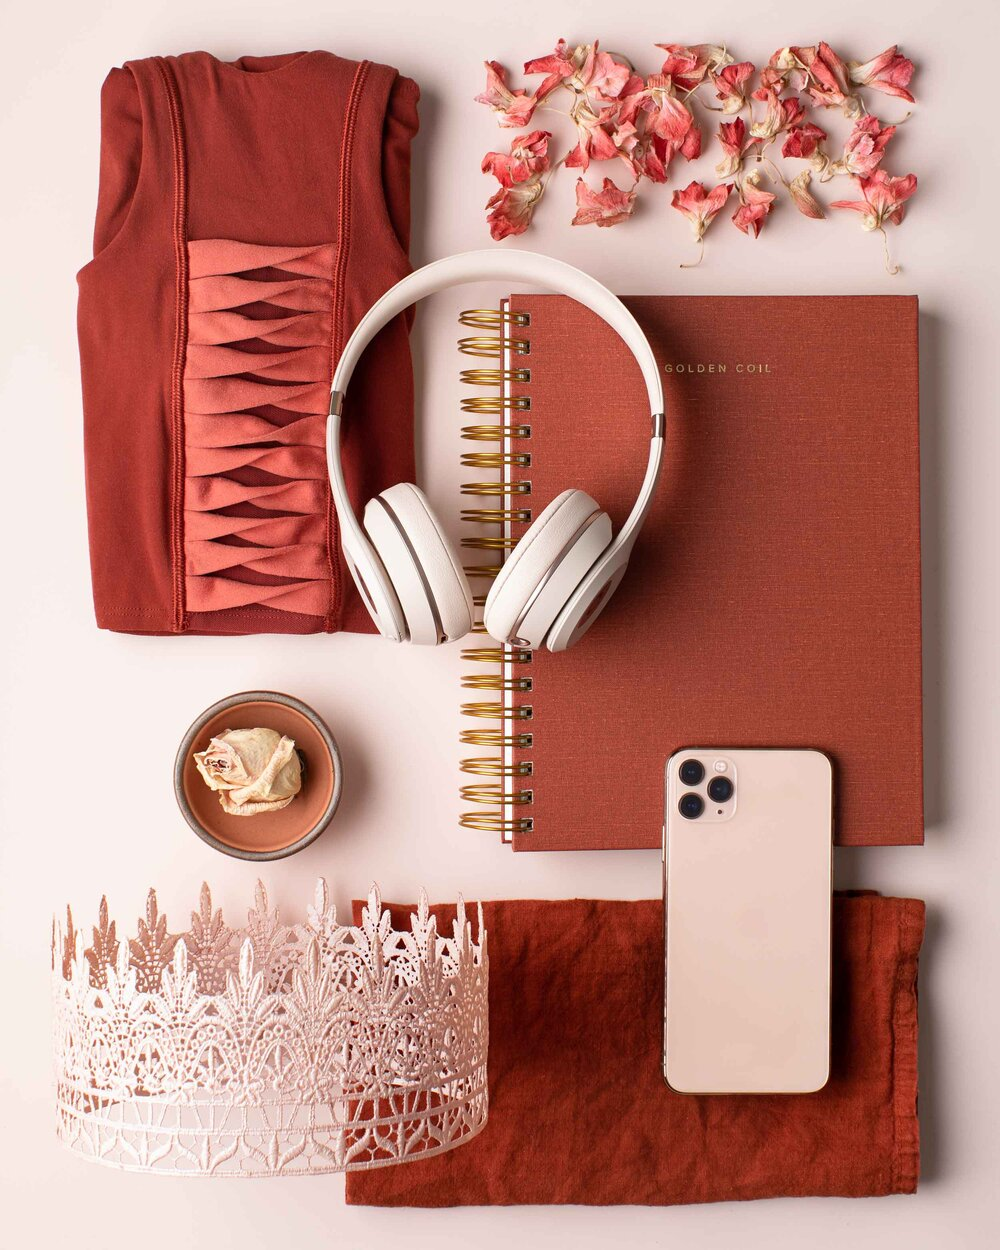 Knolling image of rust and blush colored items.